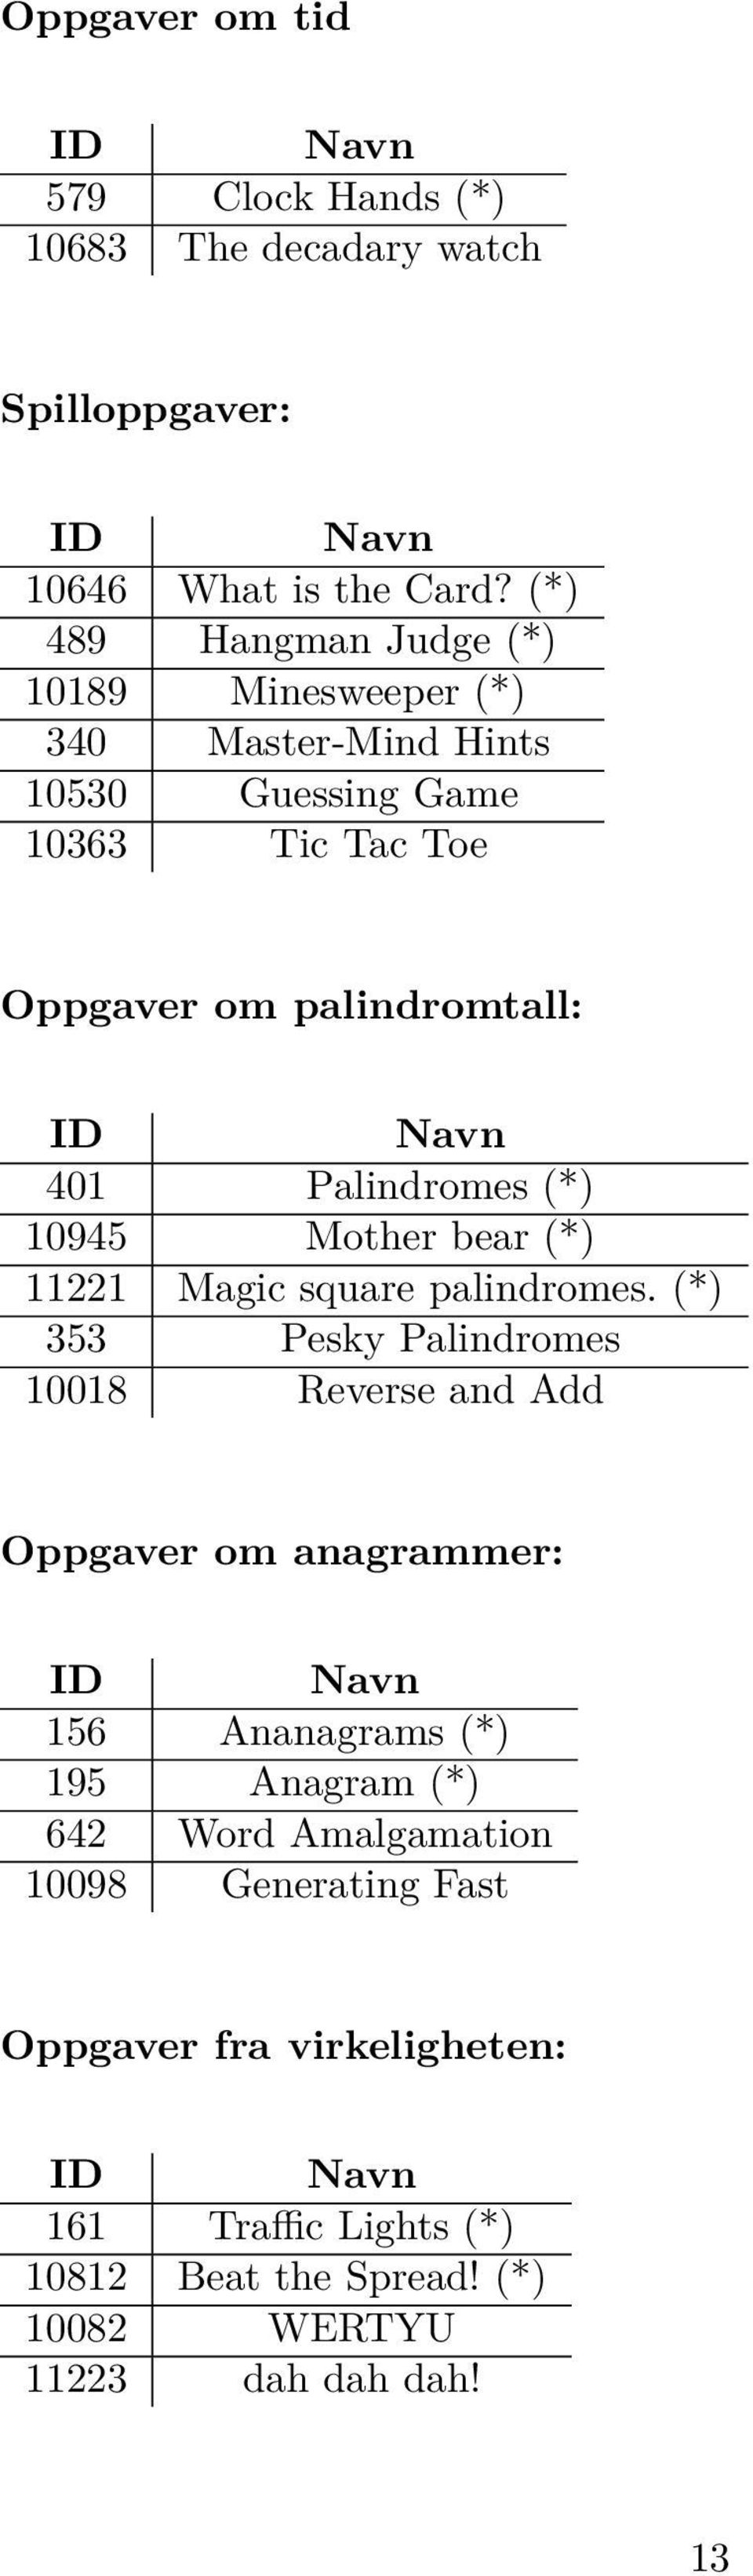 Palindromes (*) 10945 Mother bear (*) 11221 Magic square palindromes.